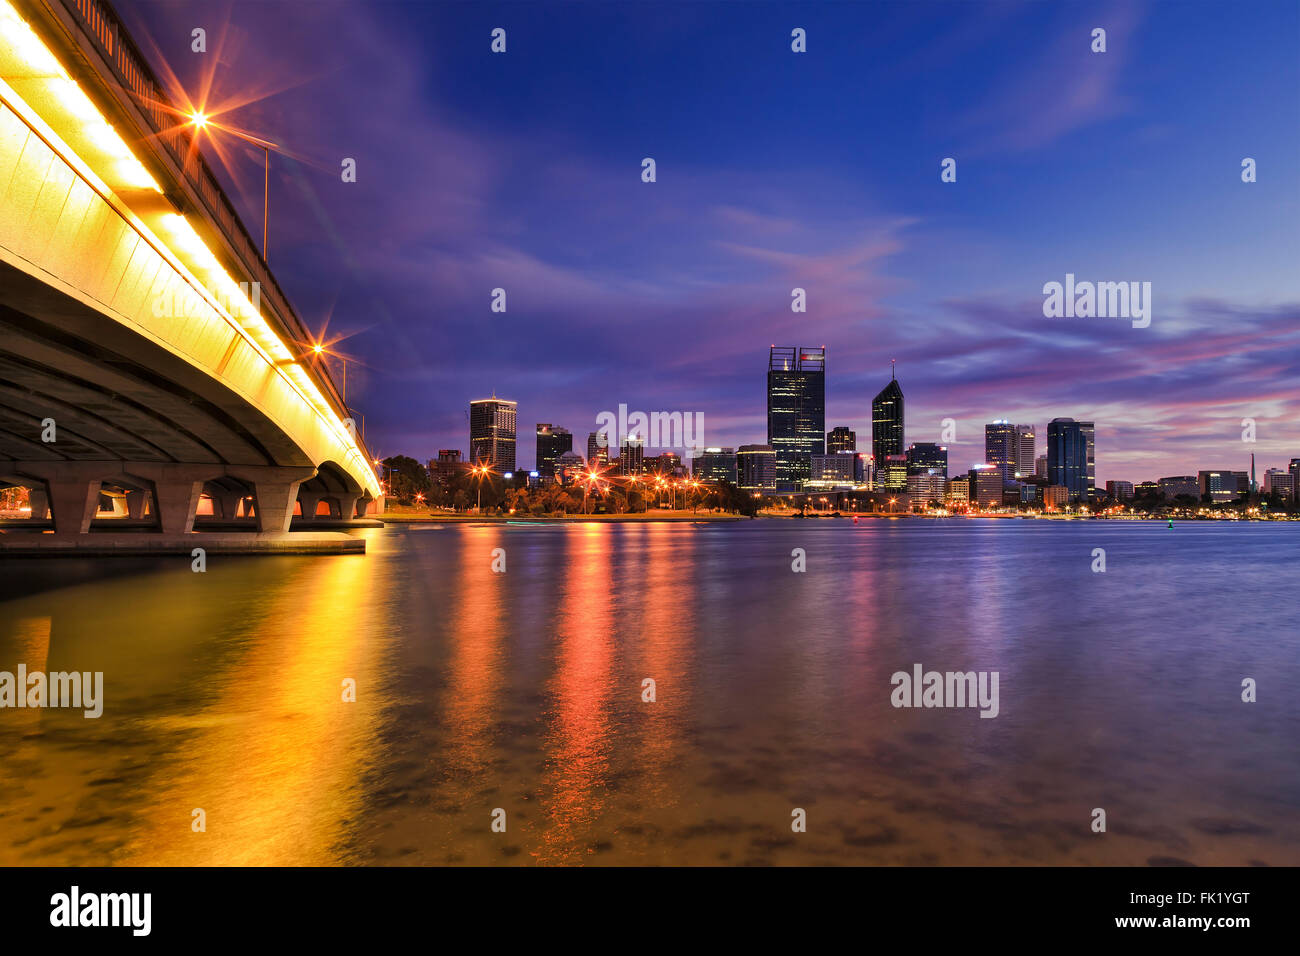 colourful sunrise over Perth city CBD with connecting bridge across Swan river. Bright lights reflecting in still - Stock Image